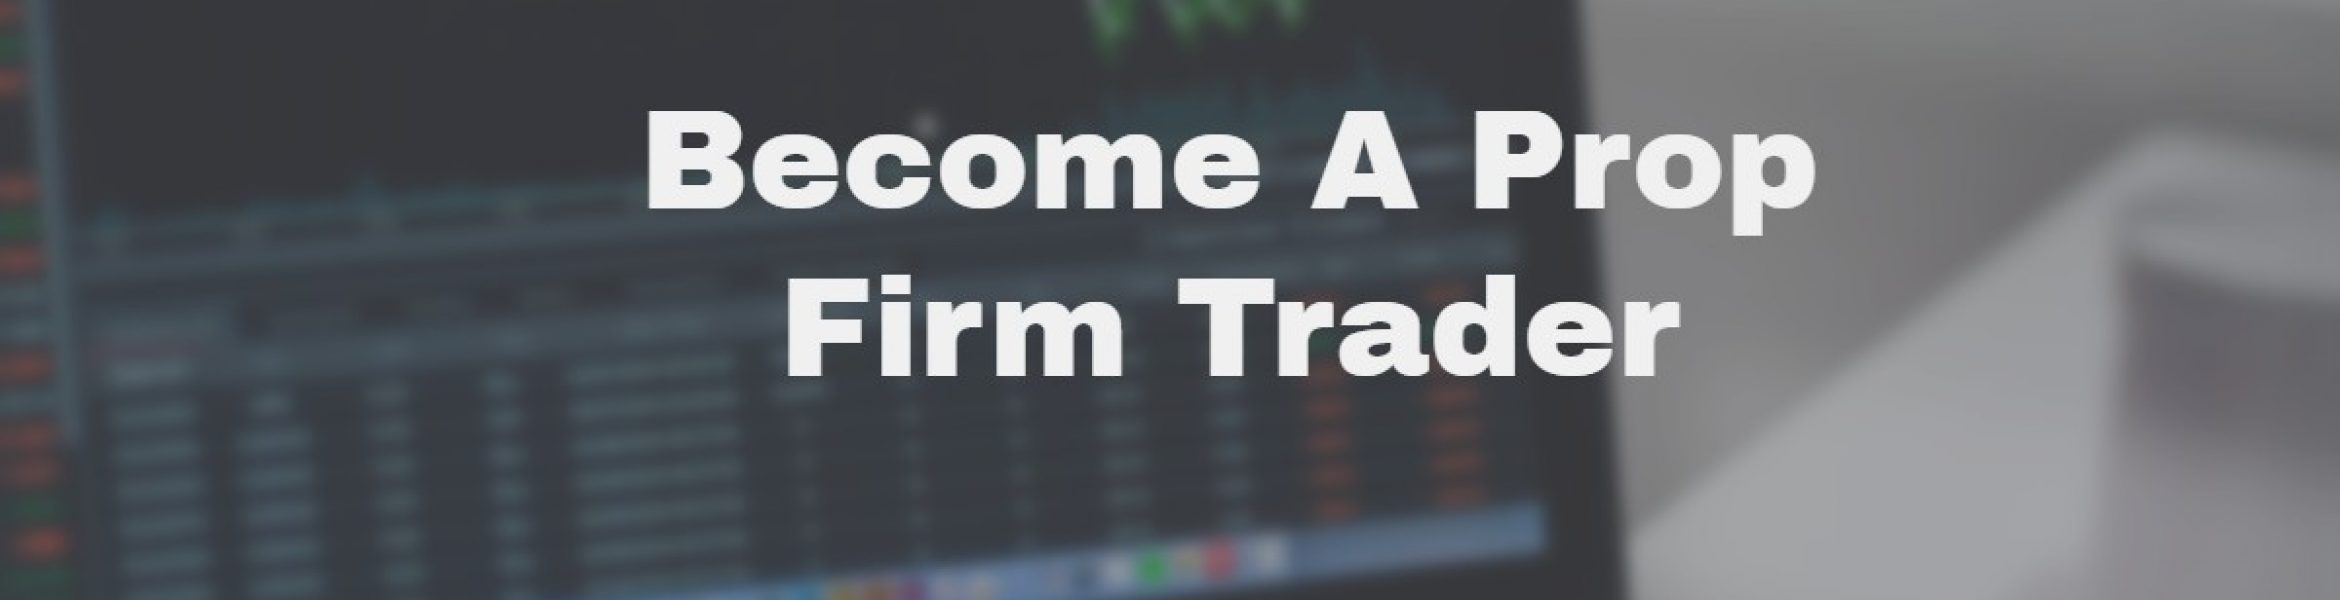 Become A Prop Firm Trader | Forex Forge